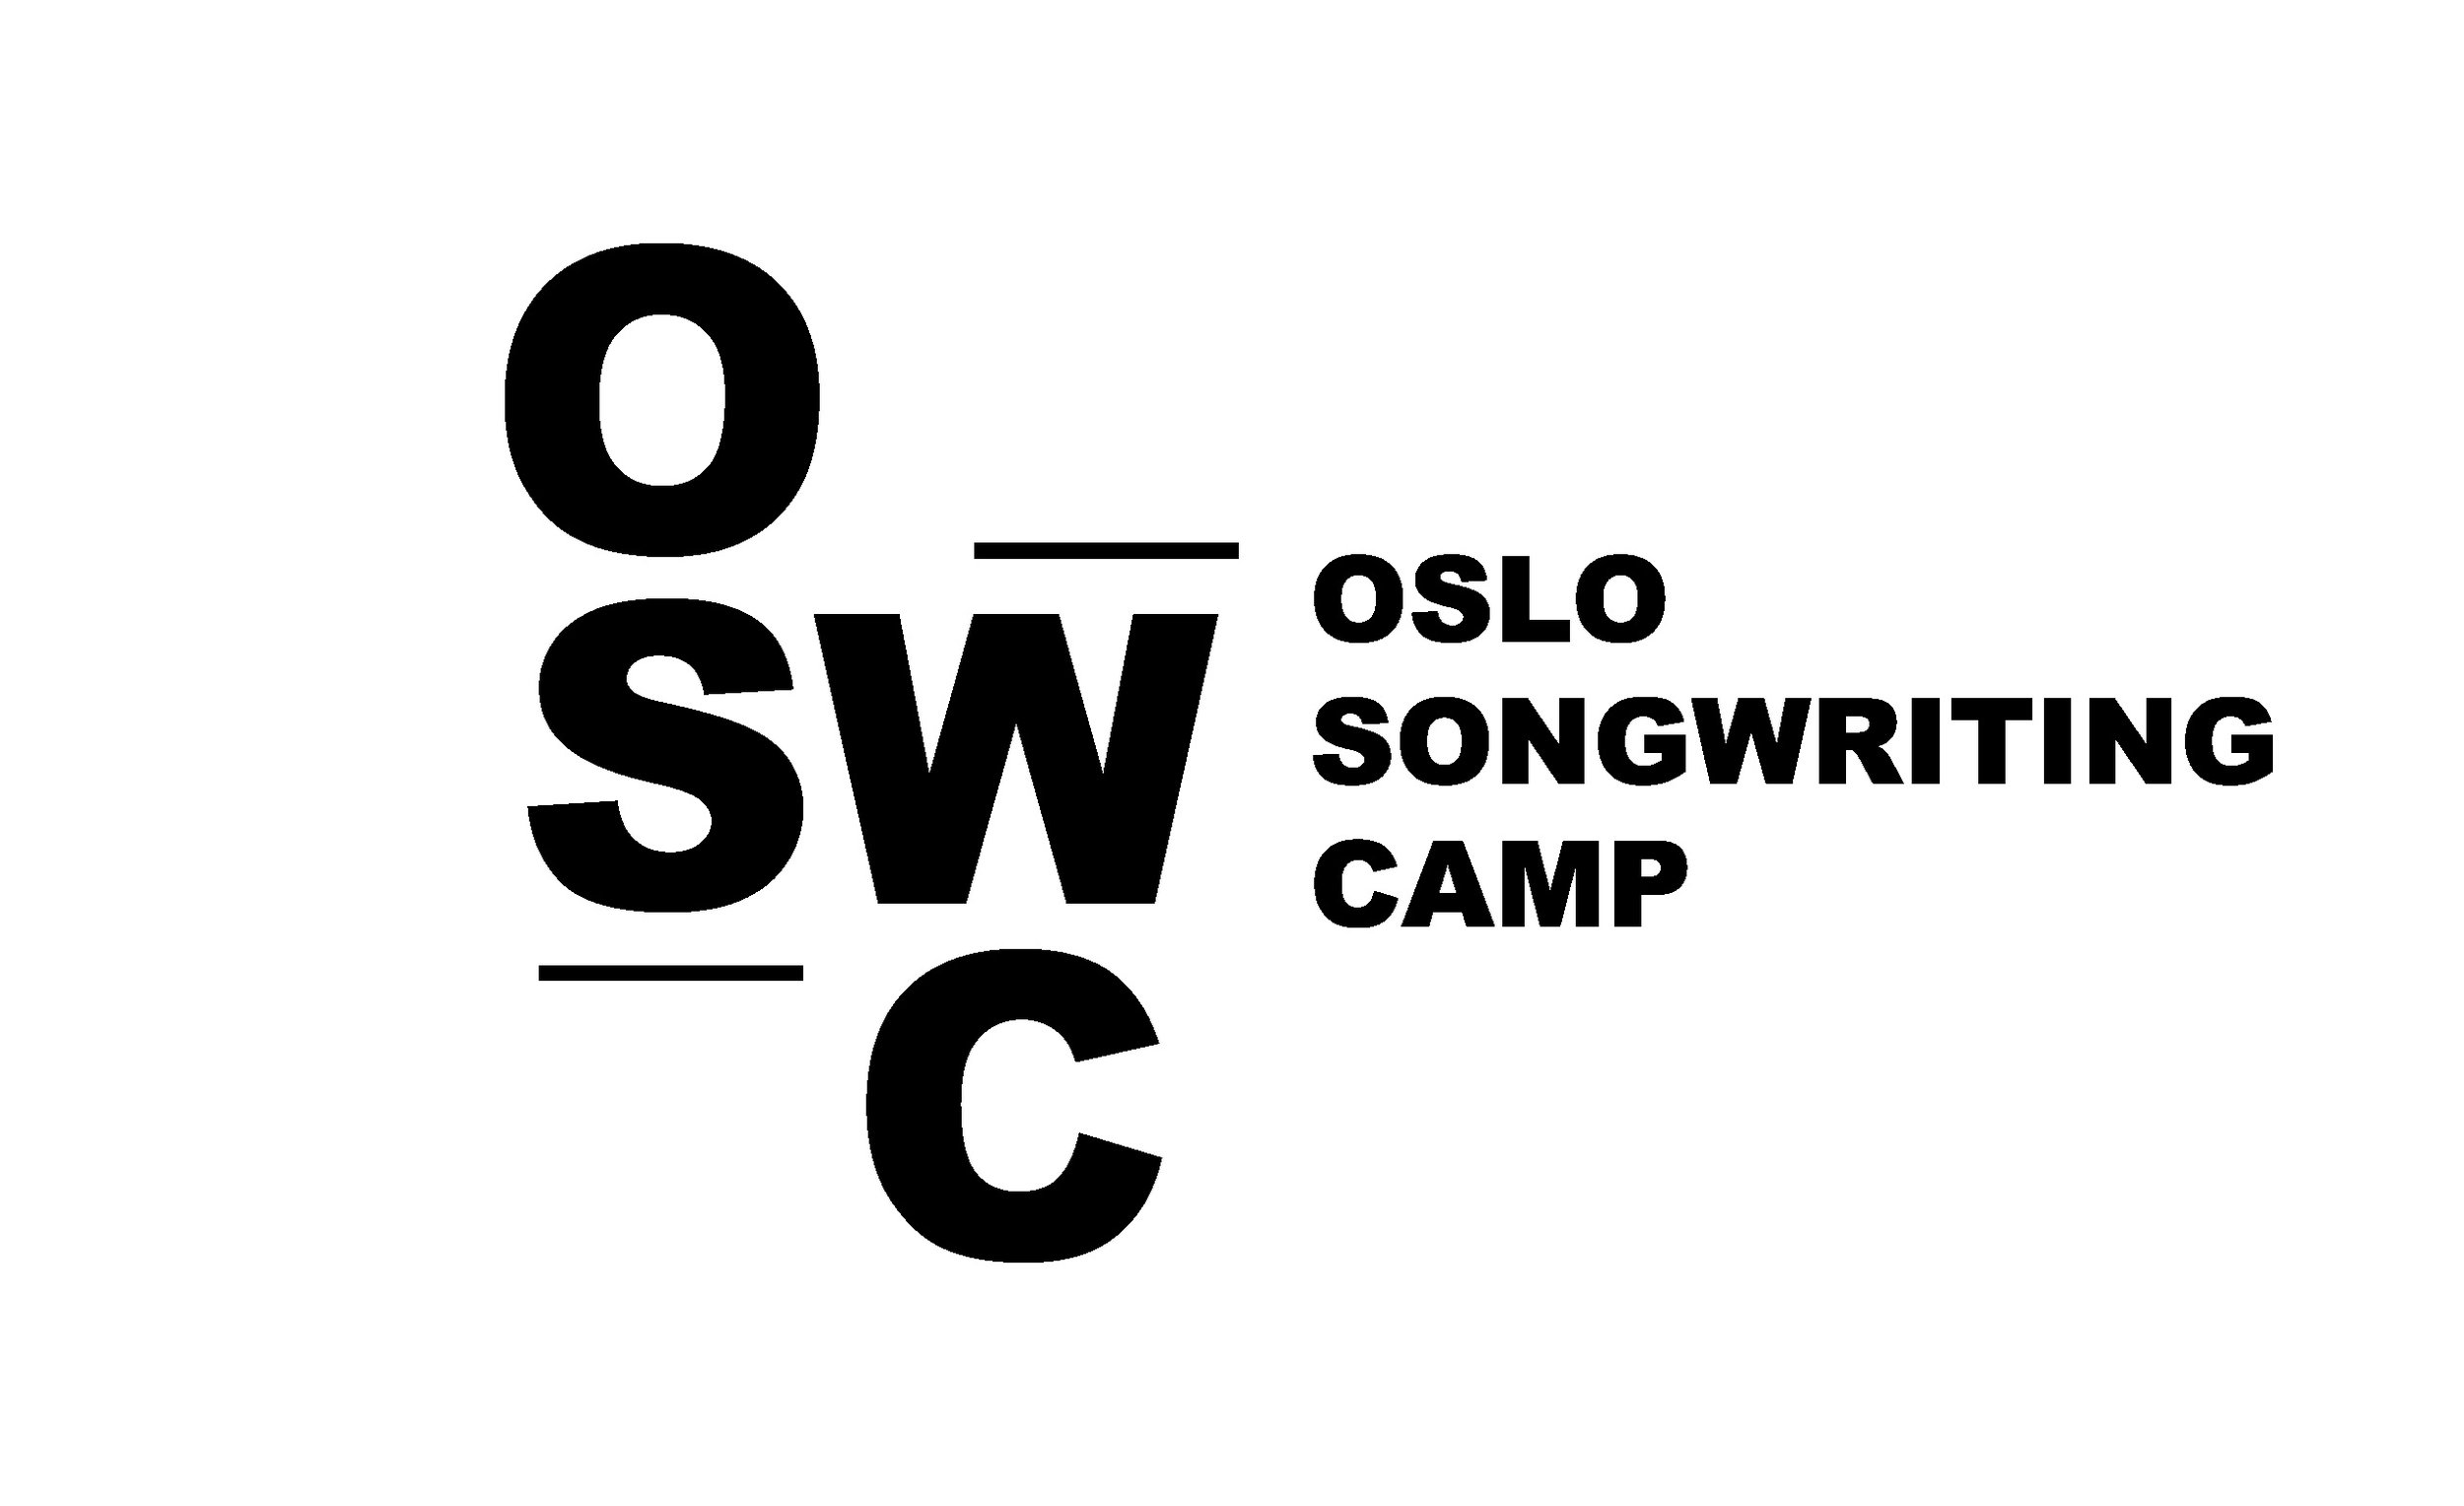 Oslo Songwriting Camp.jpg